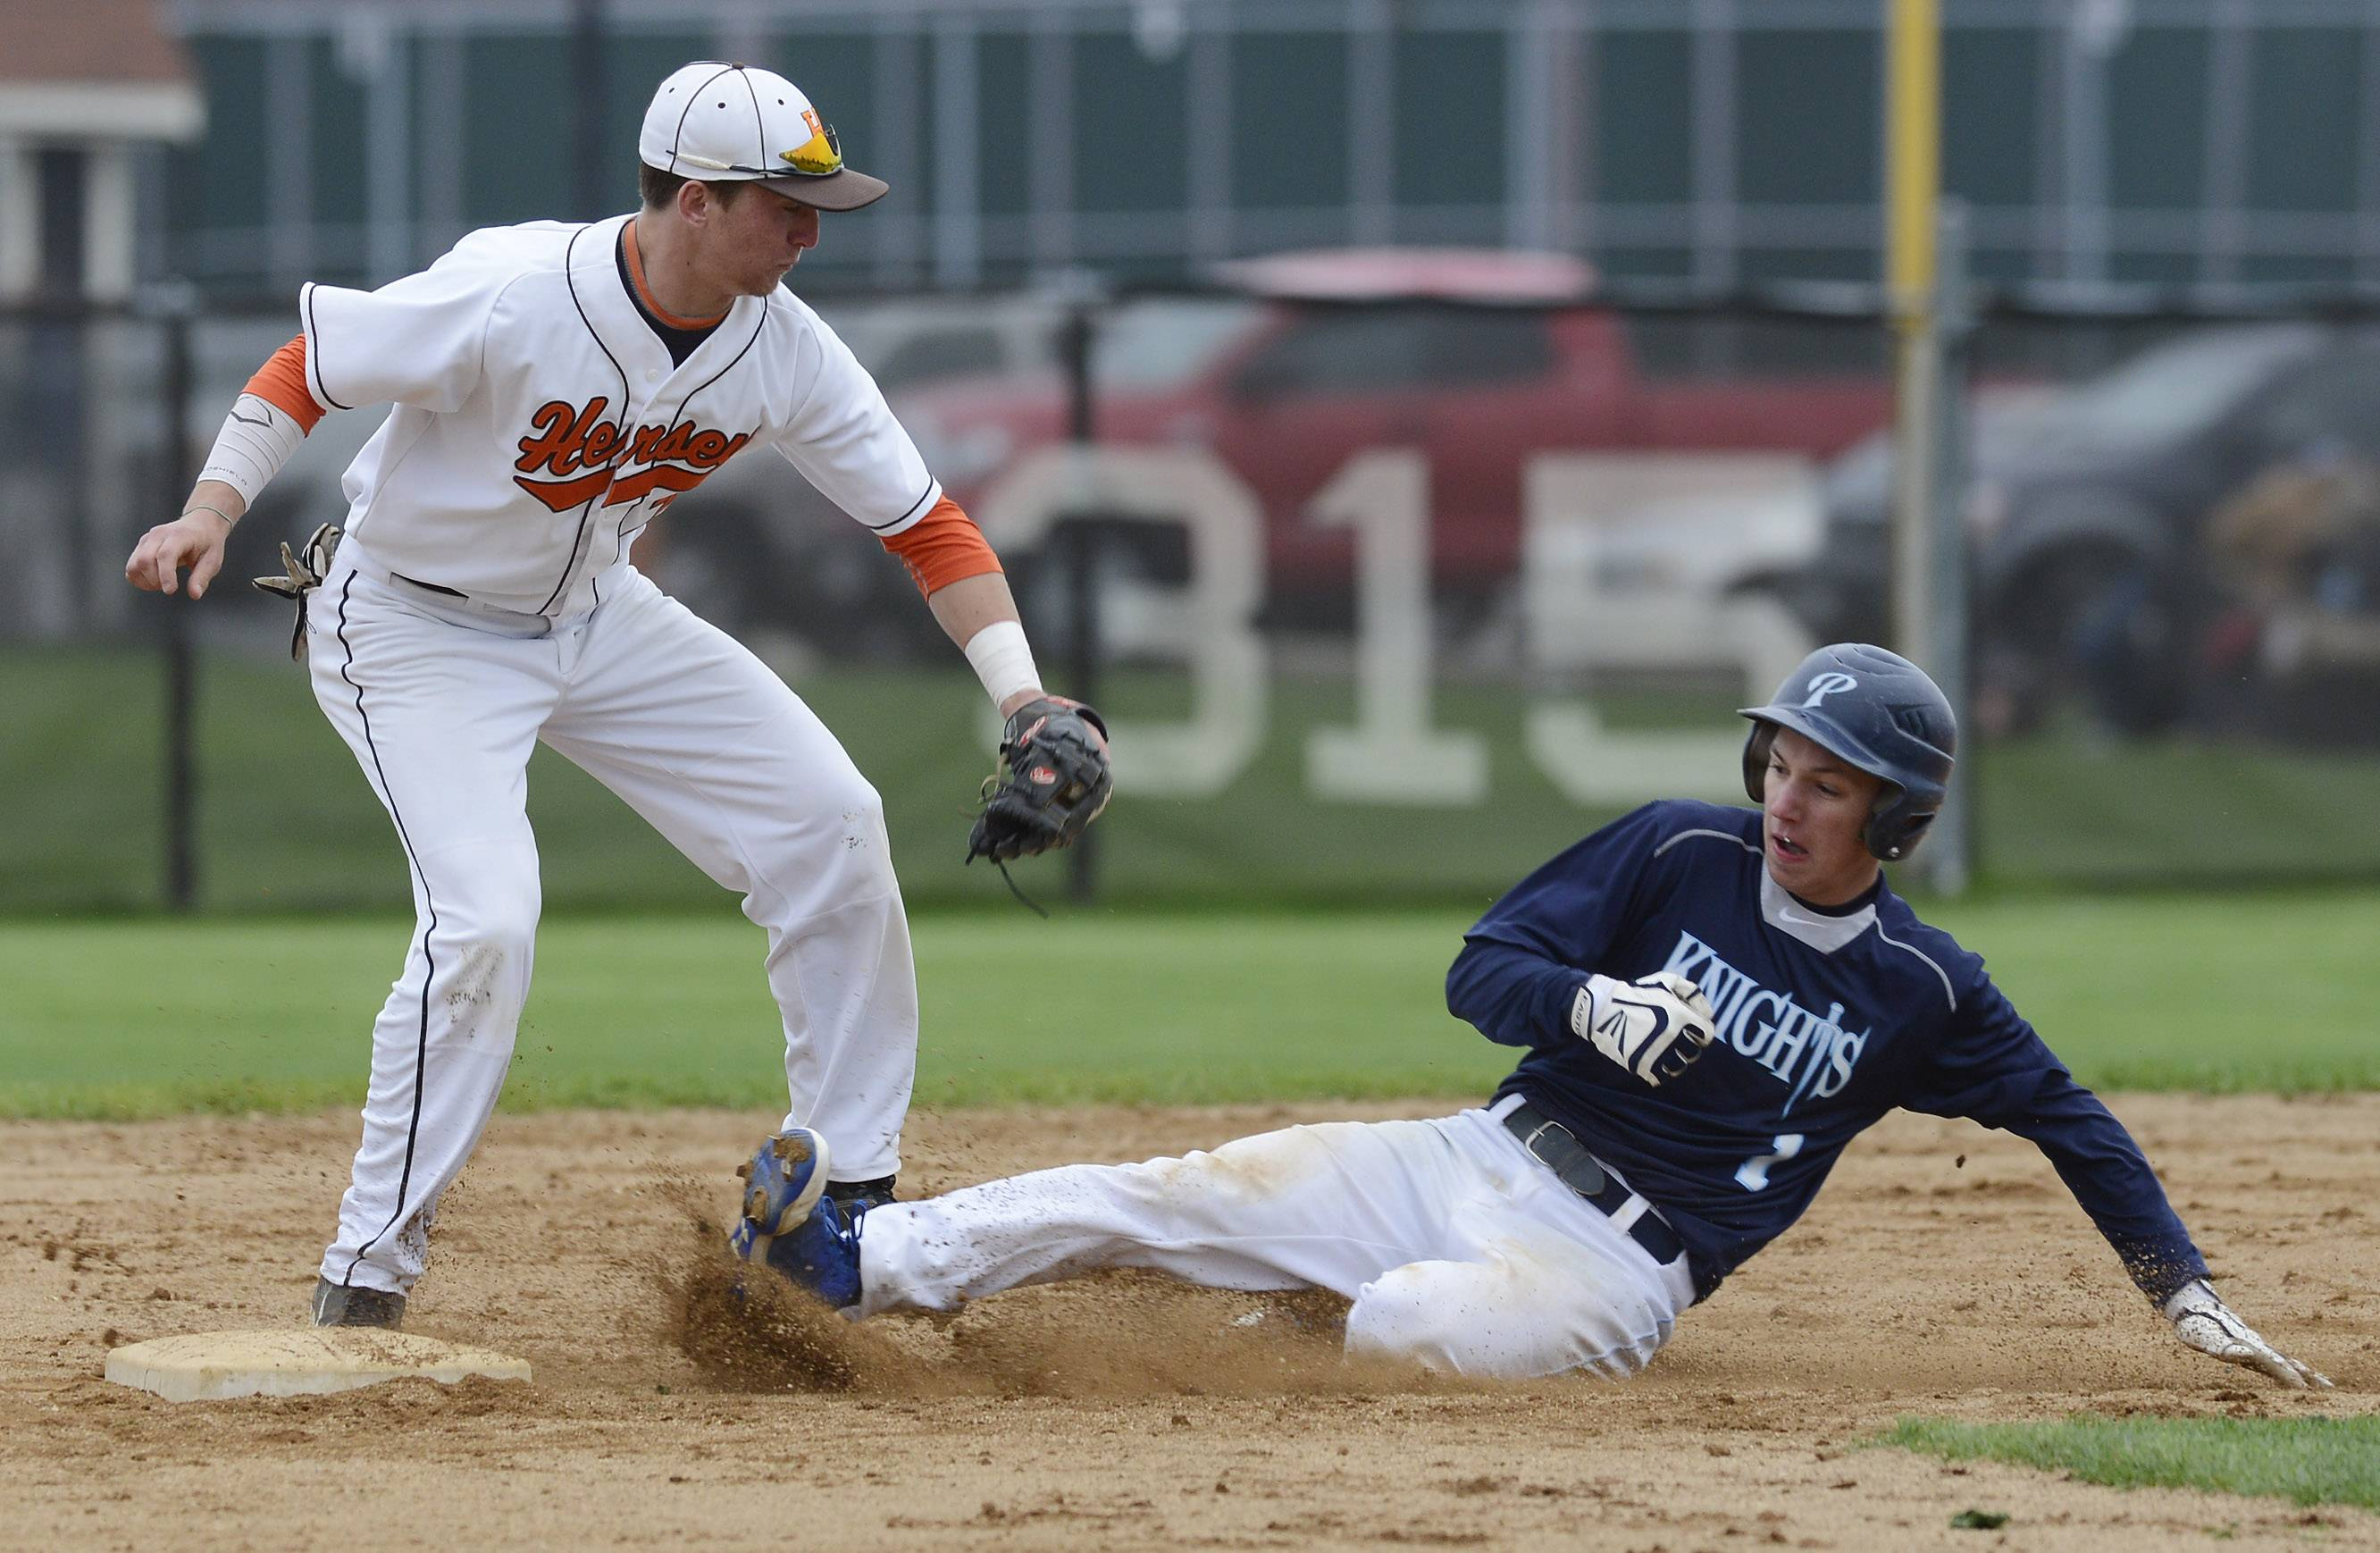 Prospect's Tyler Damasky slides safely under the tag of Hersey's Jack Warner as he steals second base during Wednesday's game in Arlington Heights.